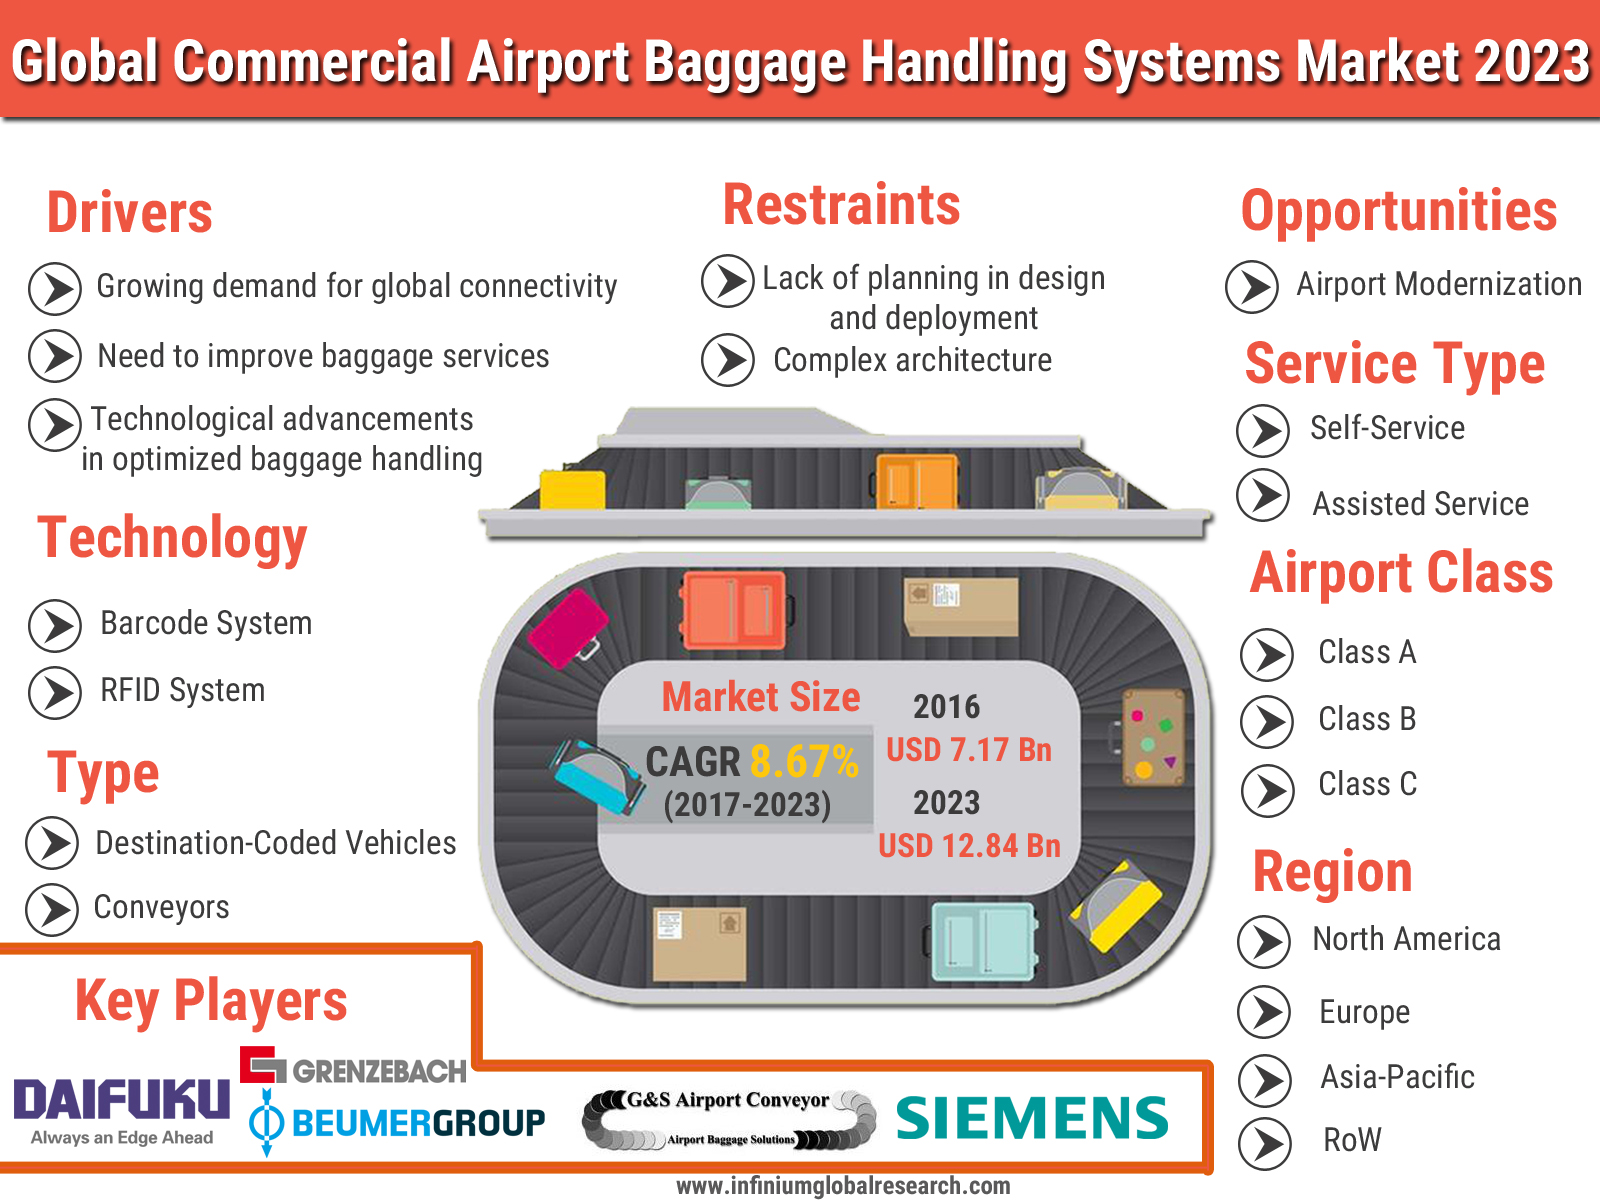 Commercial Airports Baggage Handling Systems Market